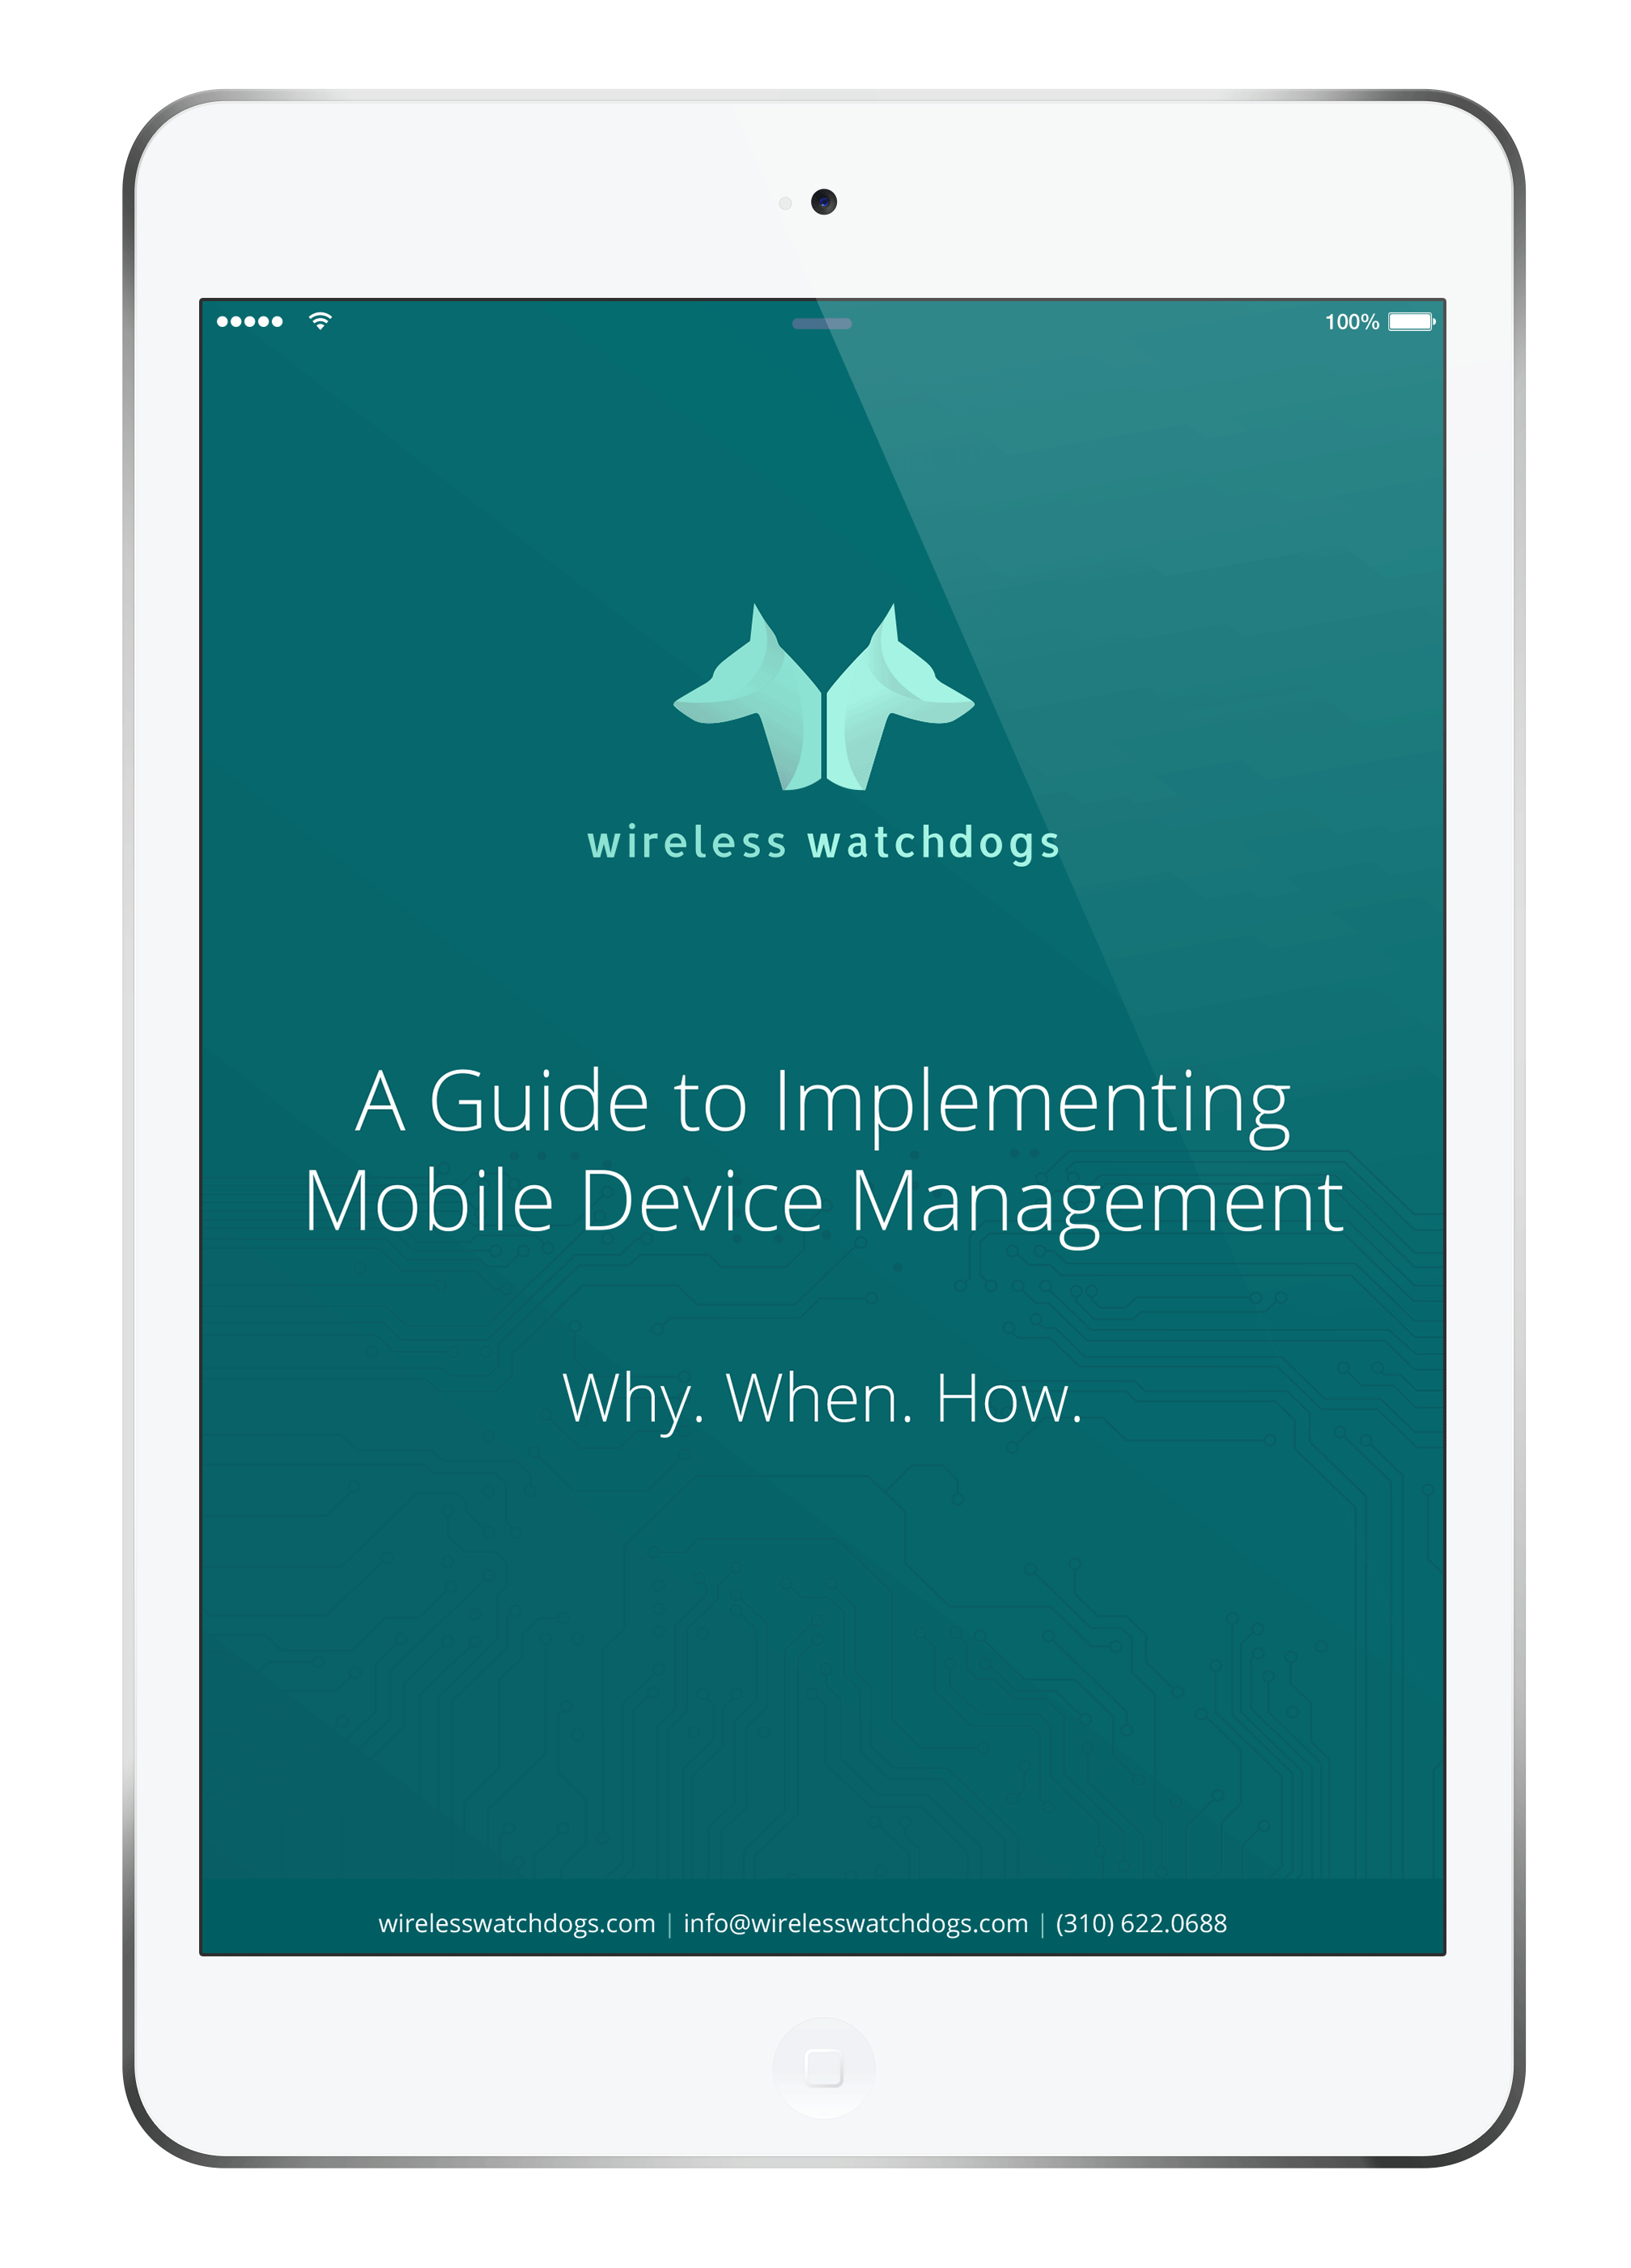 A Guide to Implementing Mobile Device Management: Why. When. How.